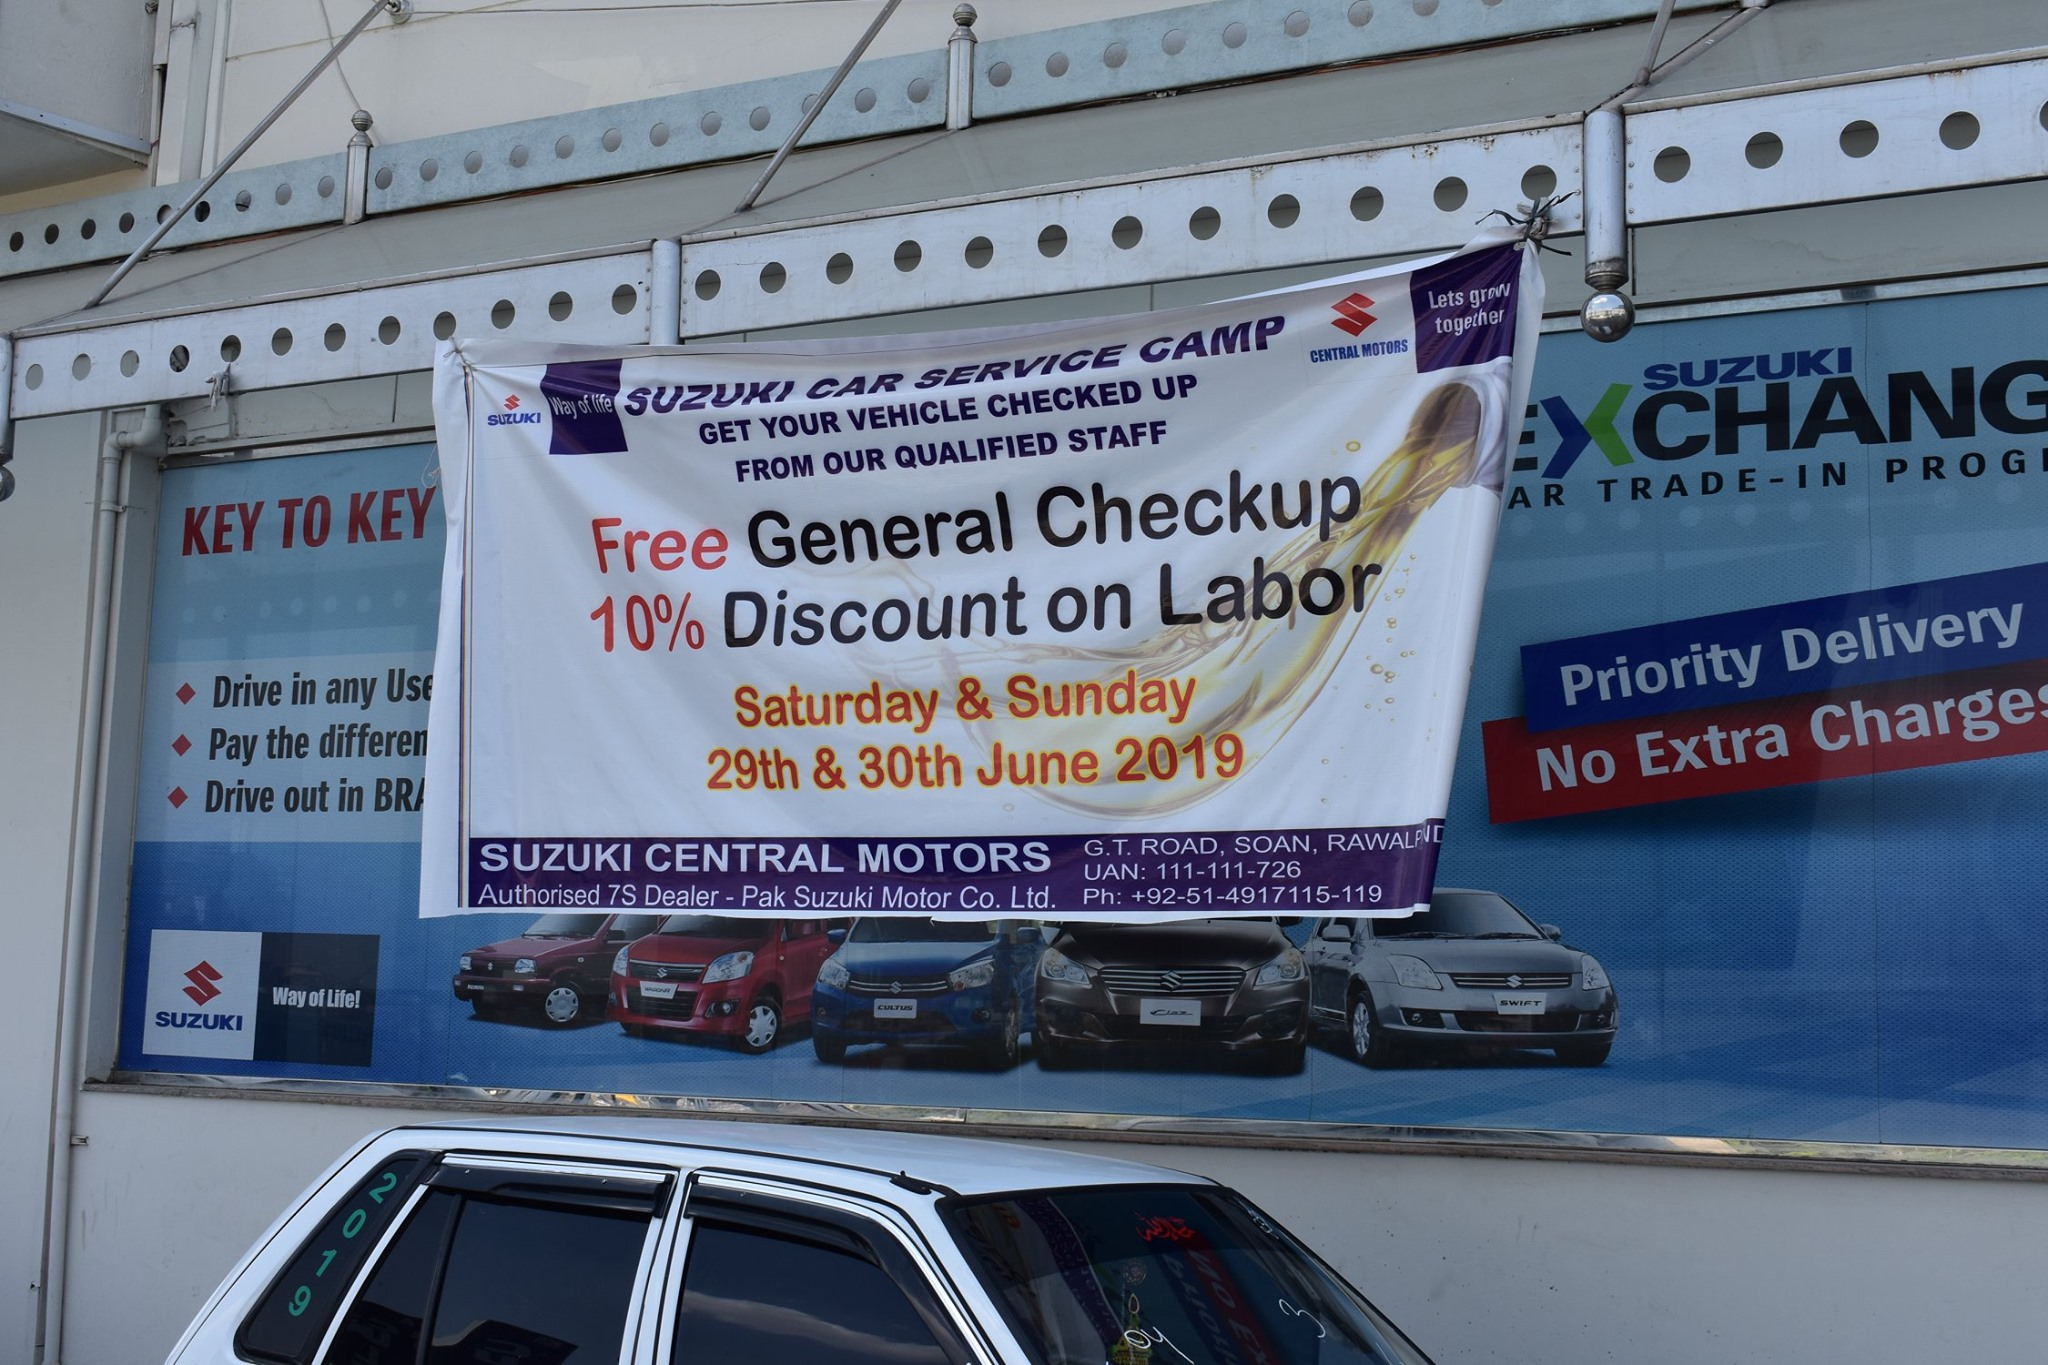 In-House Campaign For Customer Satisfaction held at suzuki central motors on 29 & 30 june 2019